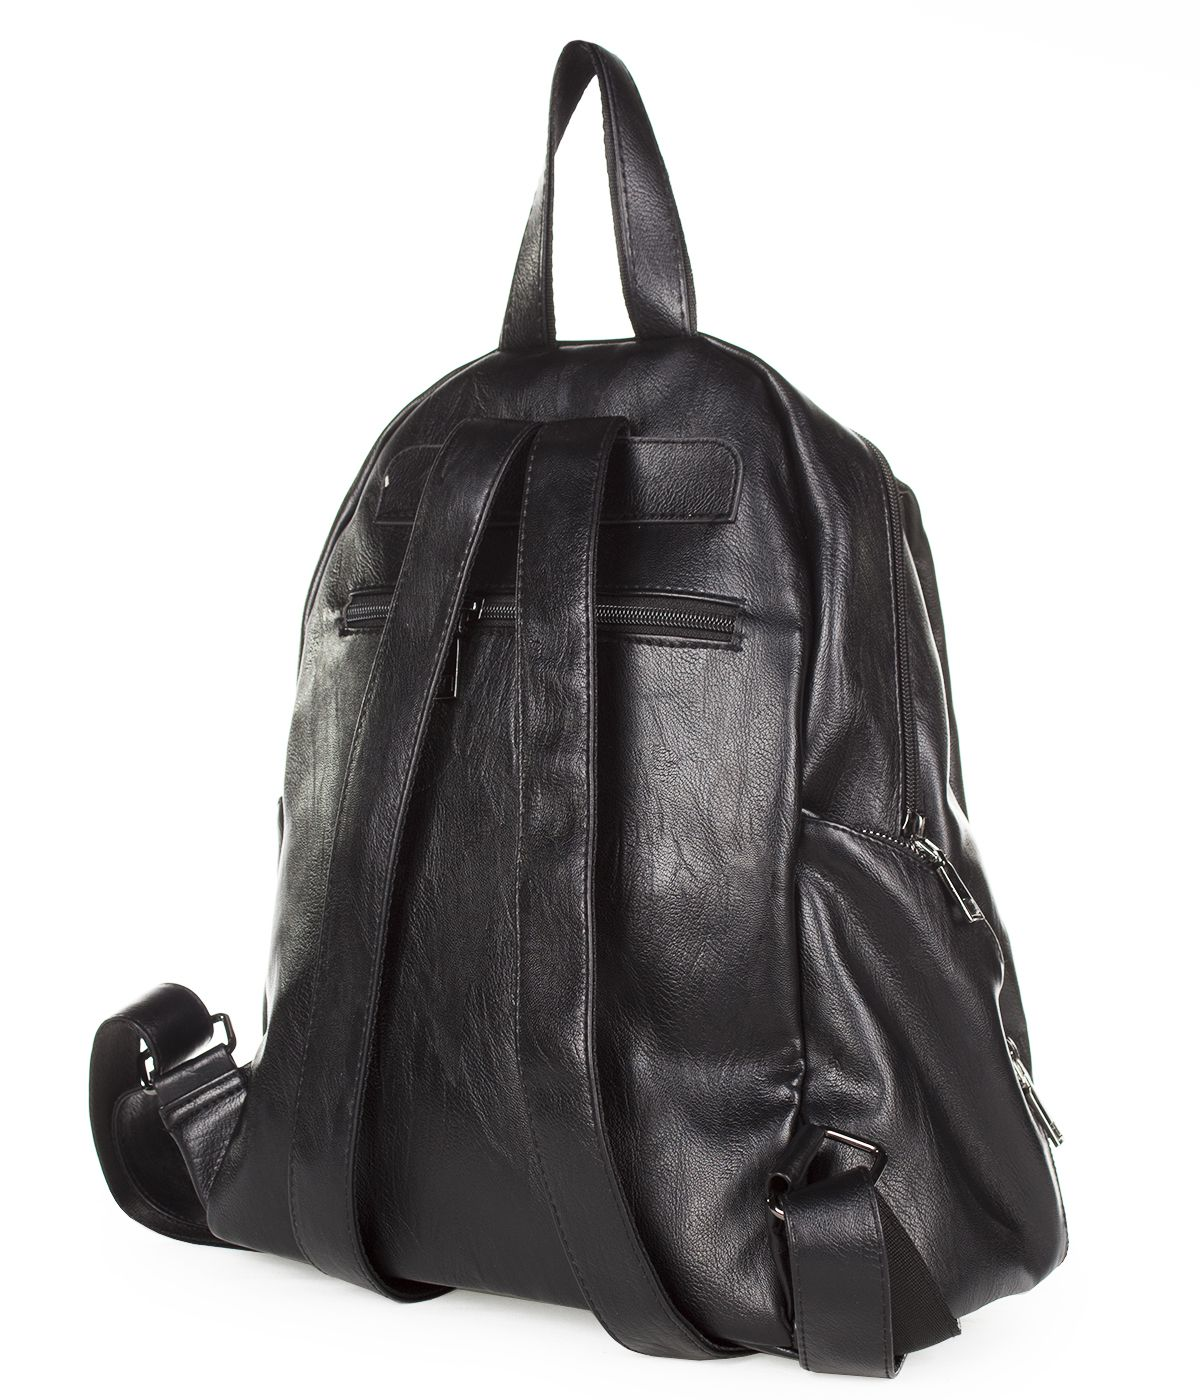 BLACK LEATHER BACKPACK 1